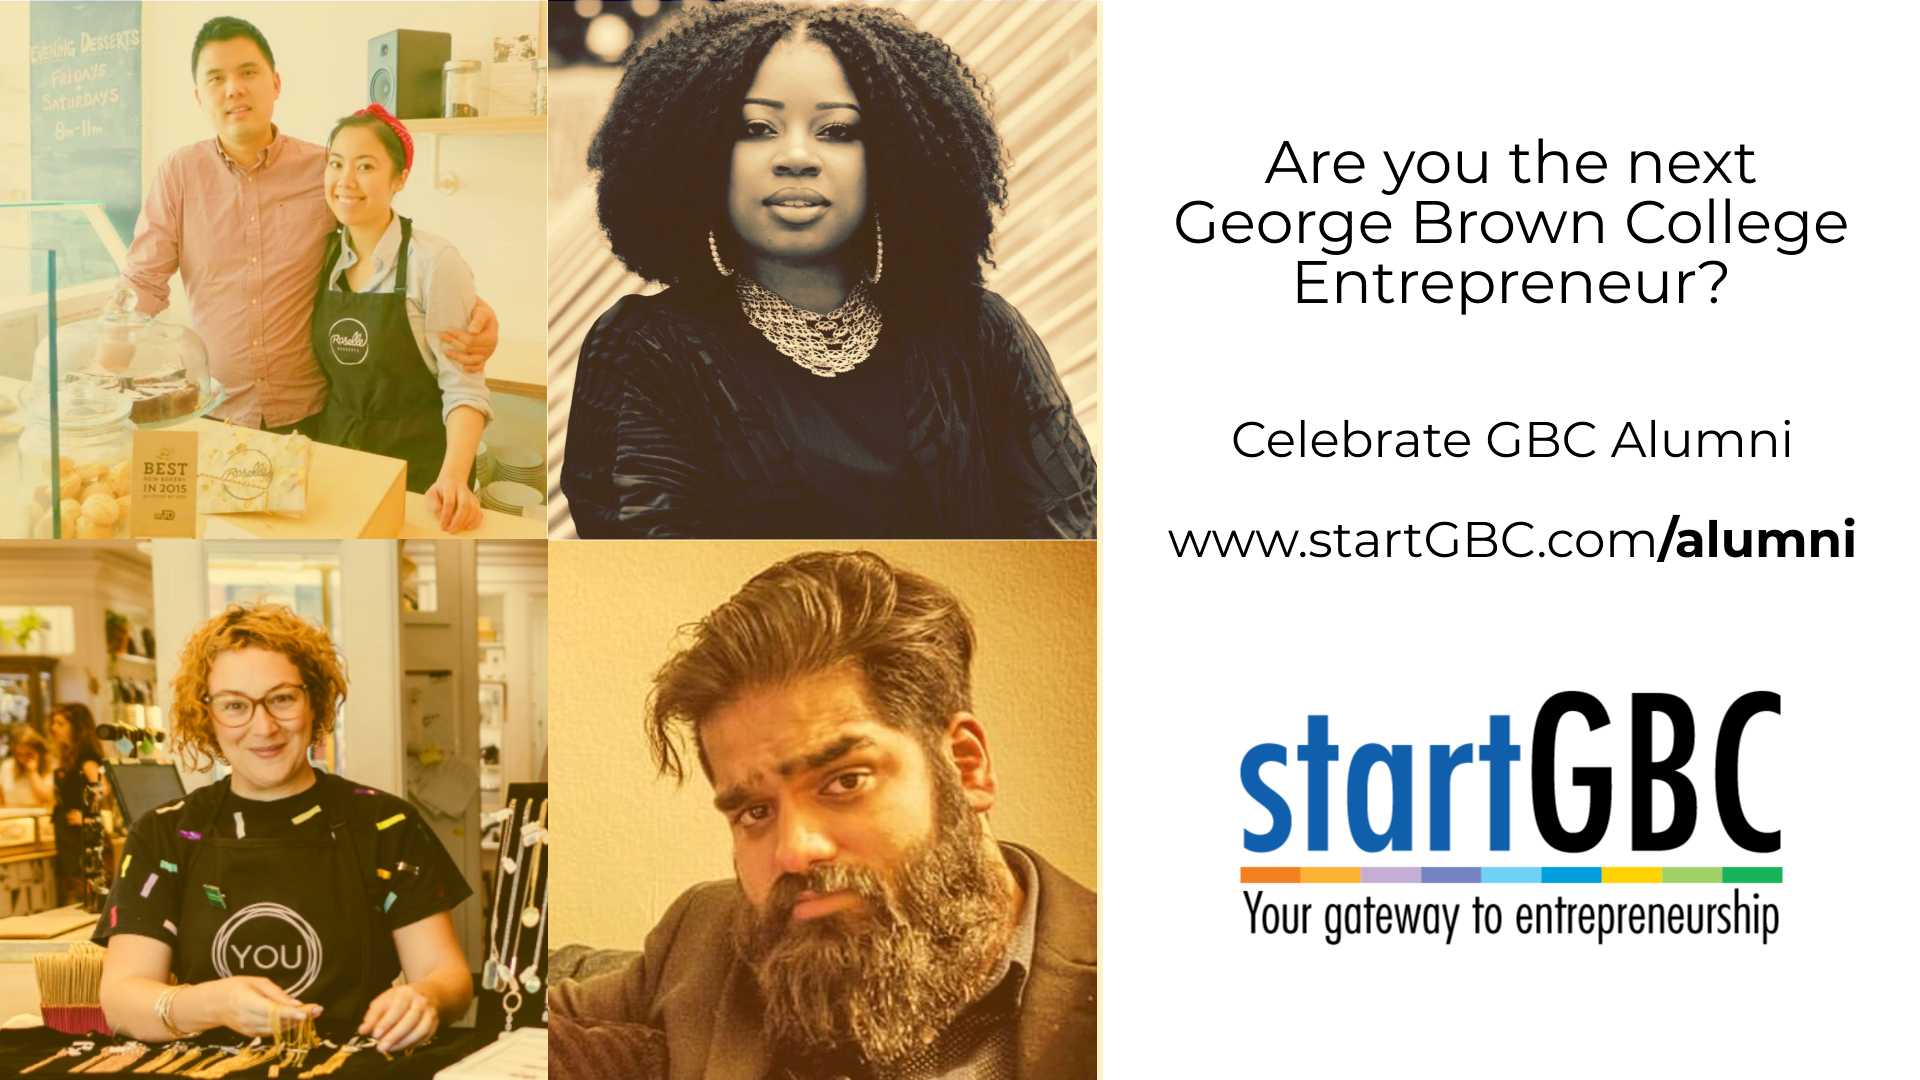 Are you the next startGBC alumni? Visit startgbc.com/alumni